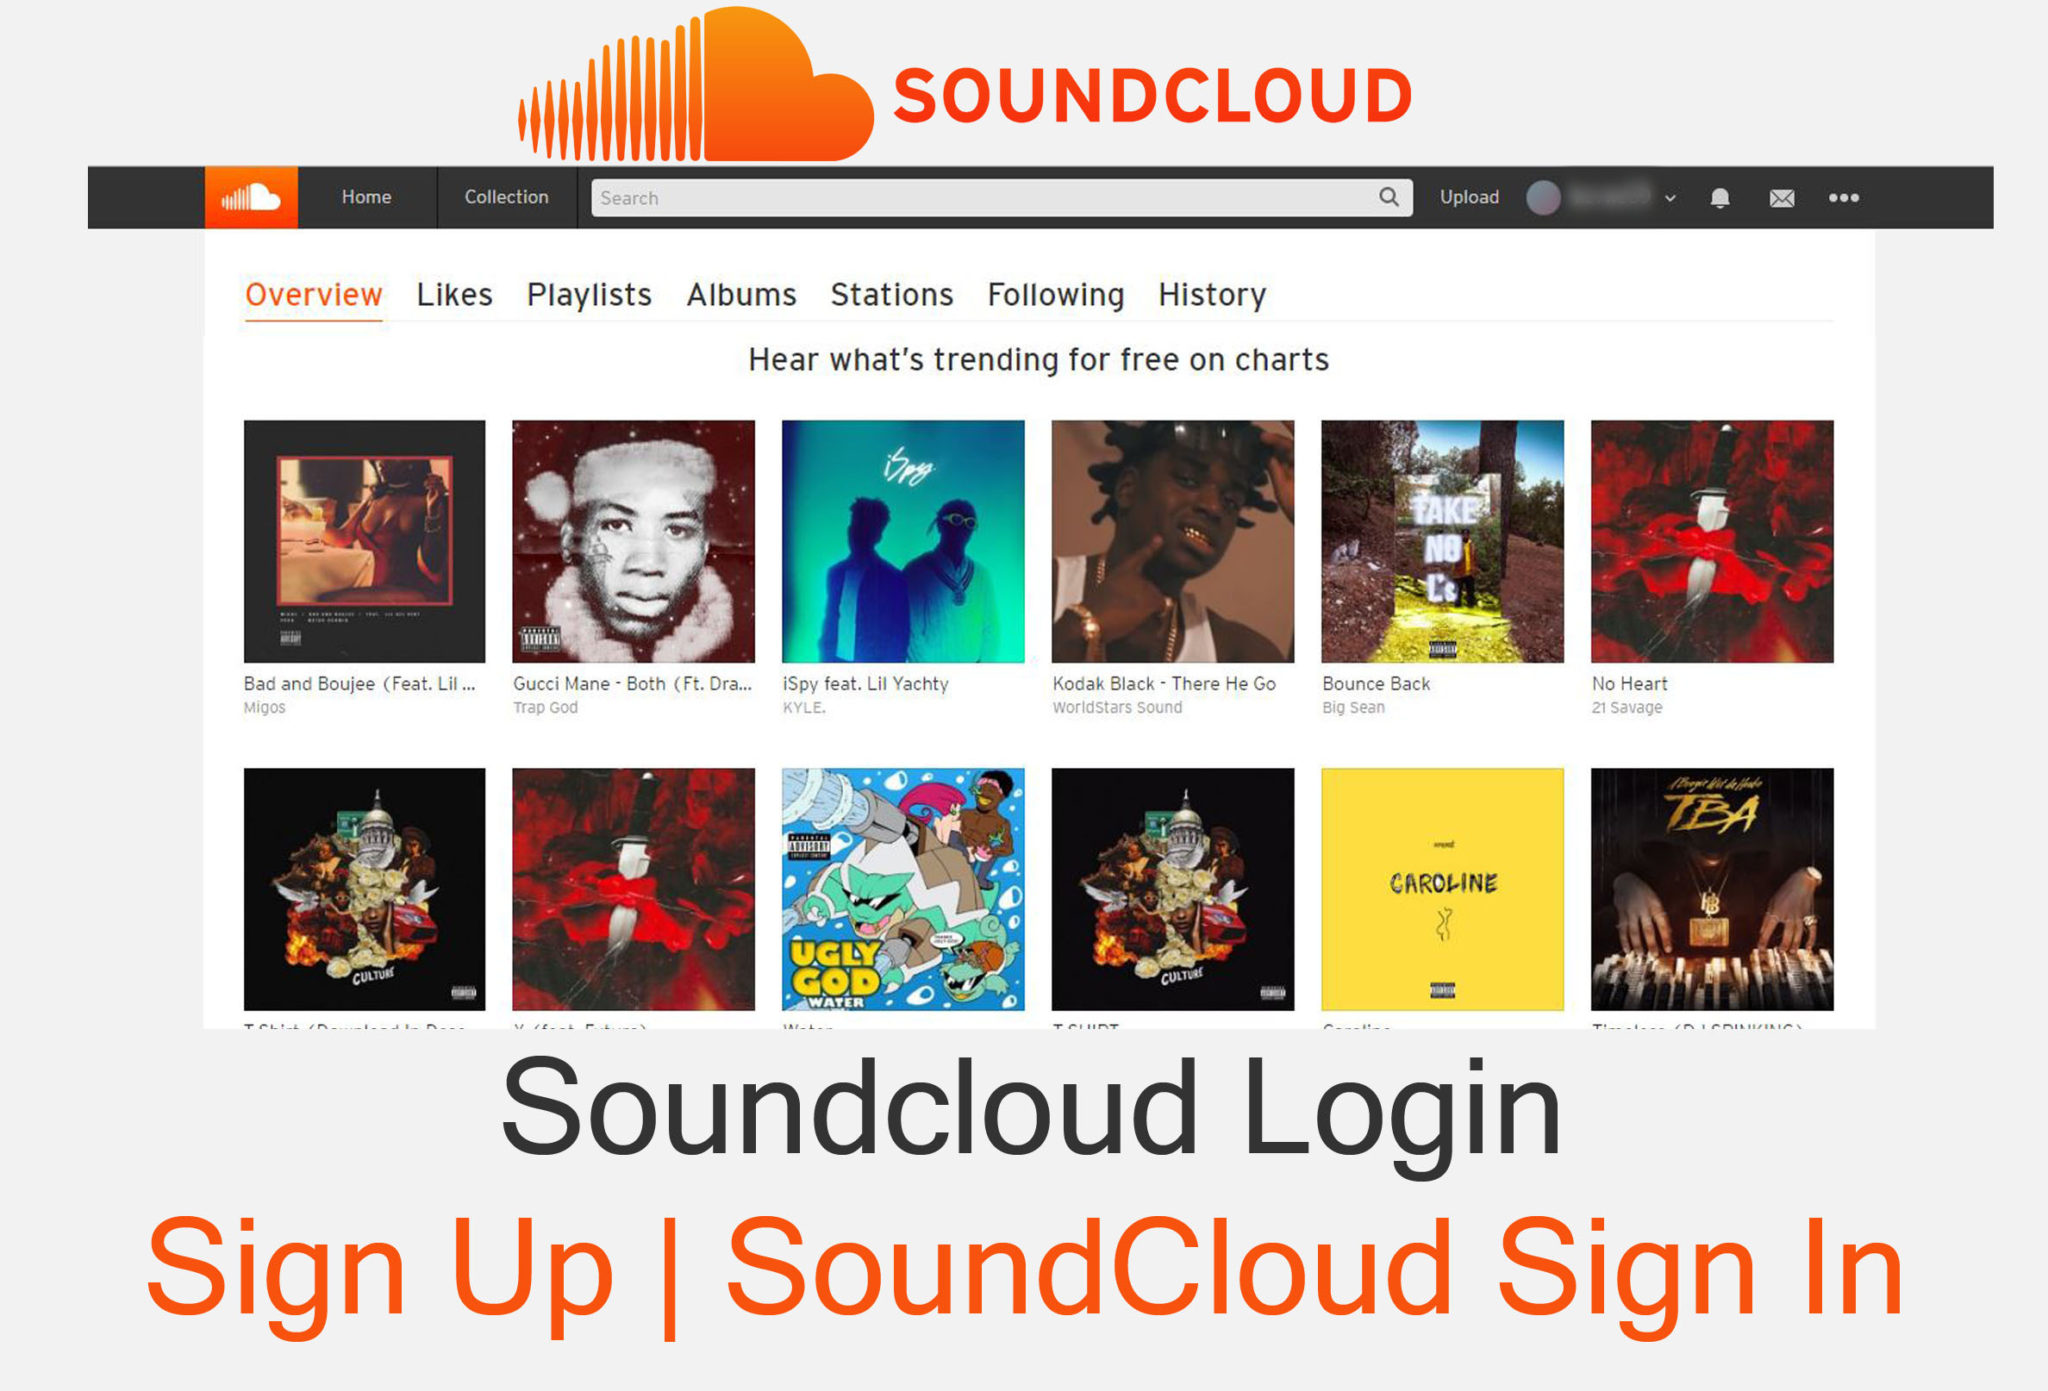 Soundcloud Login